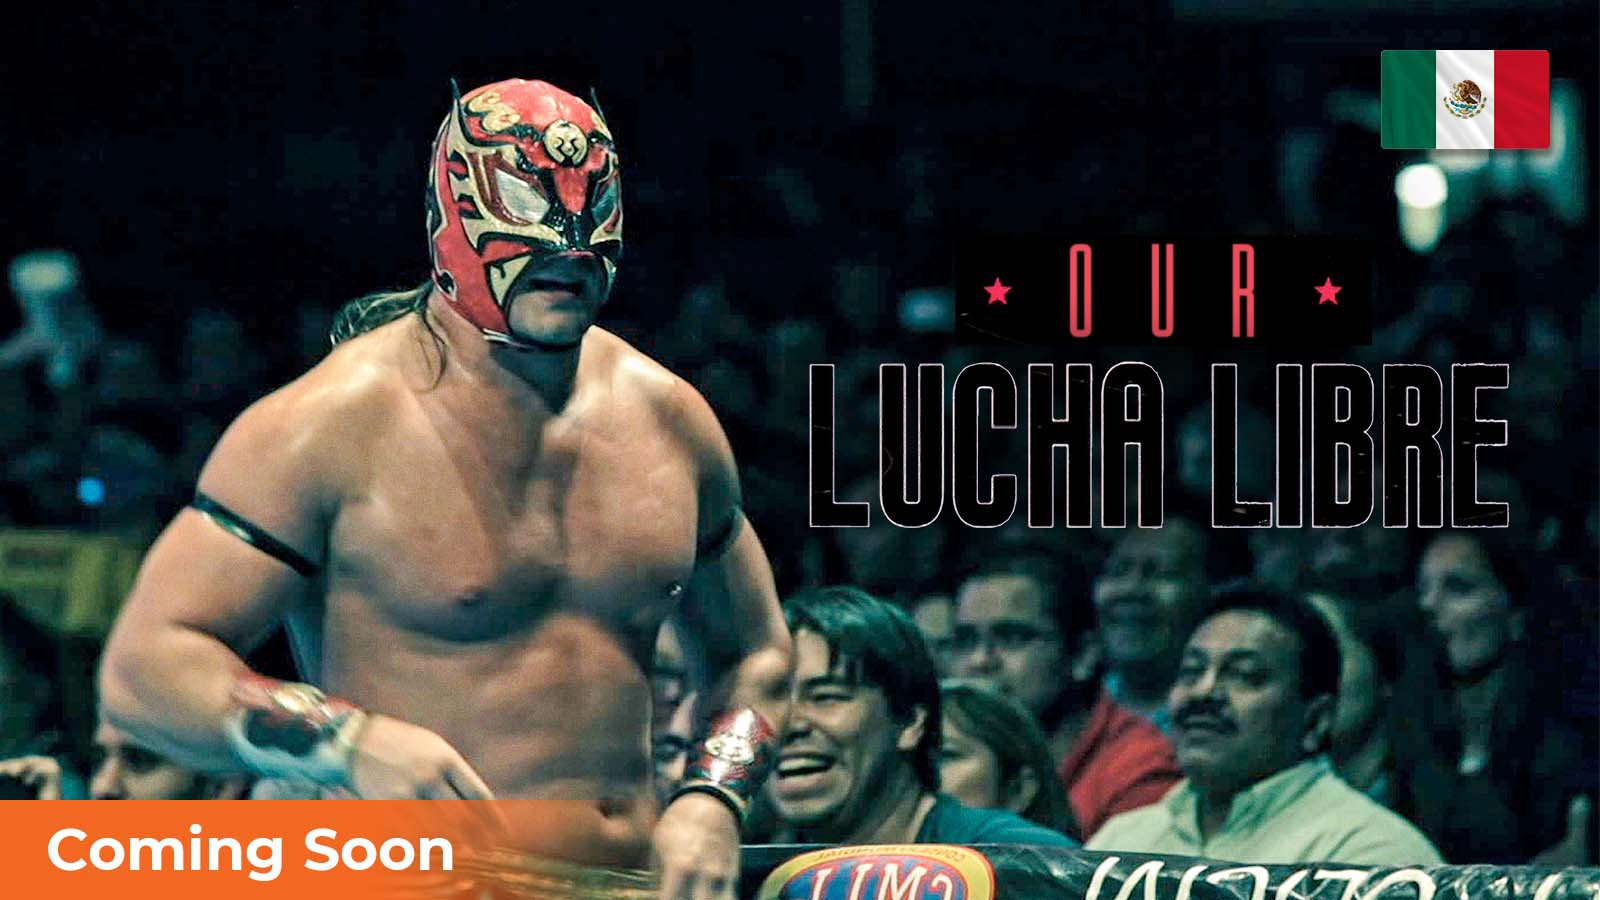 Our Lucha Libre poster